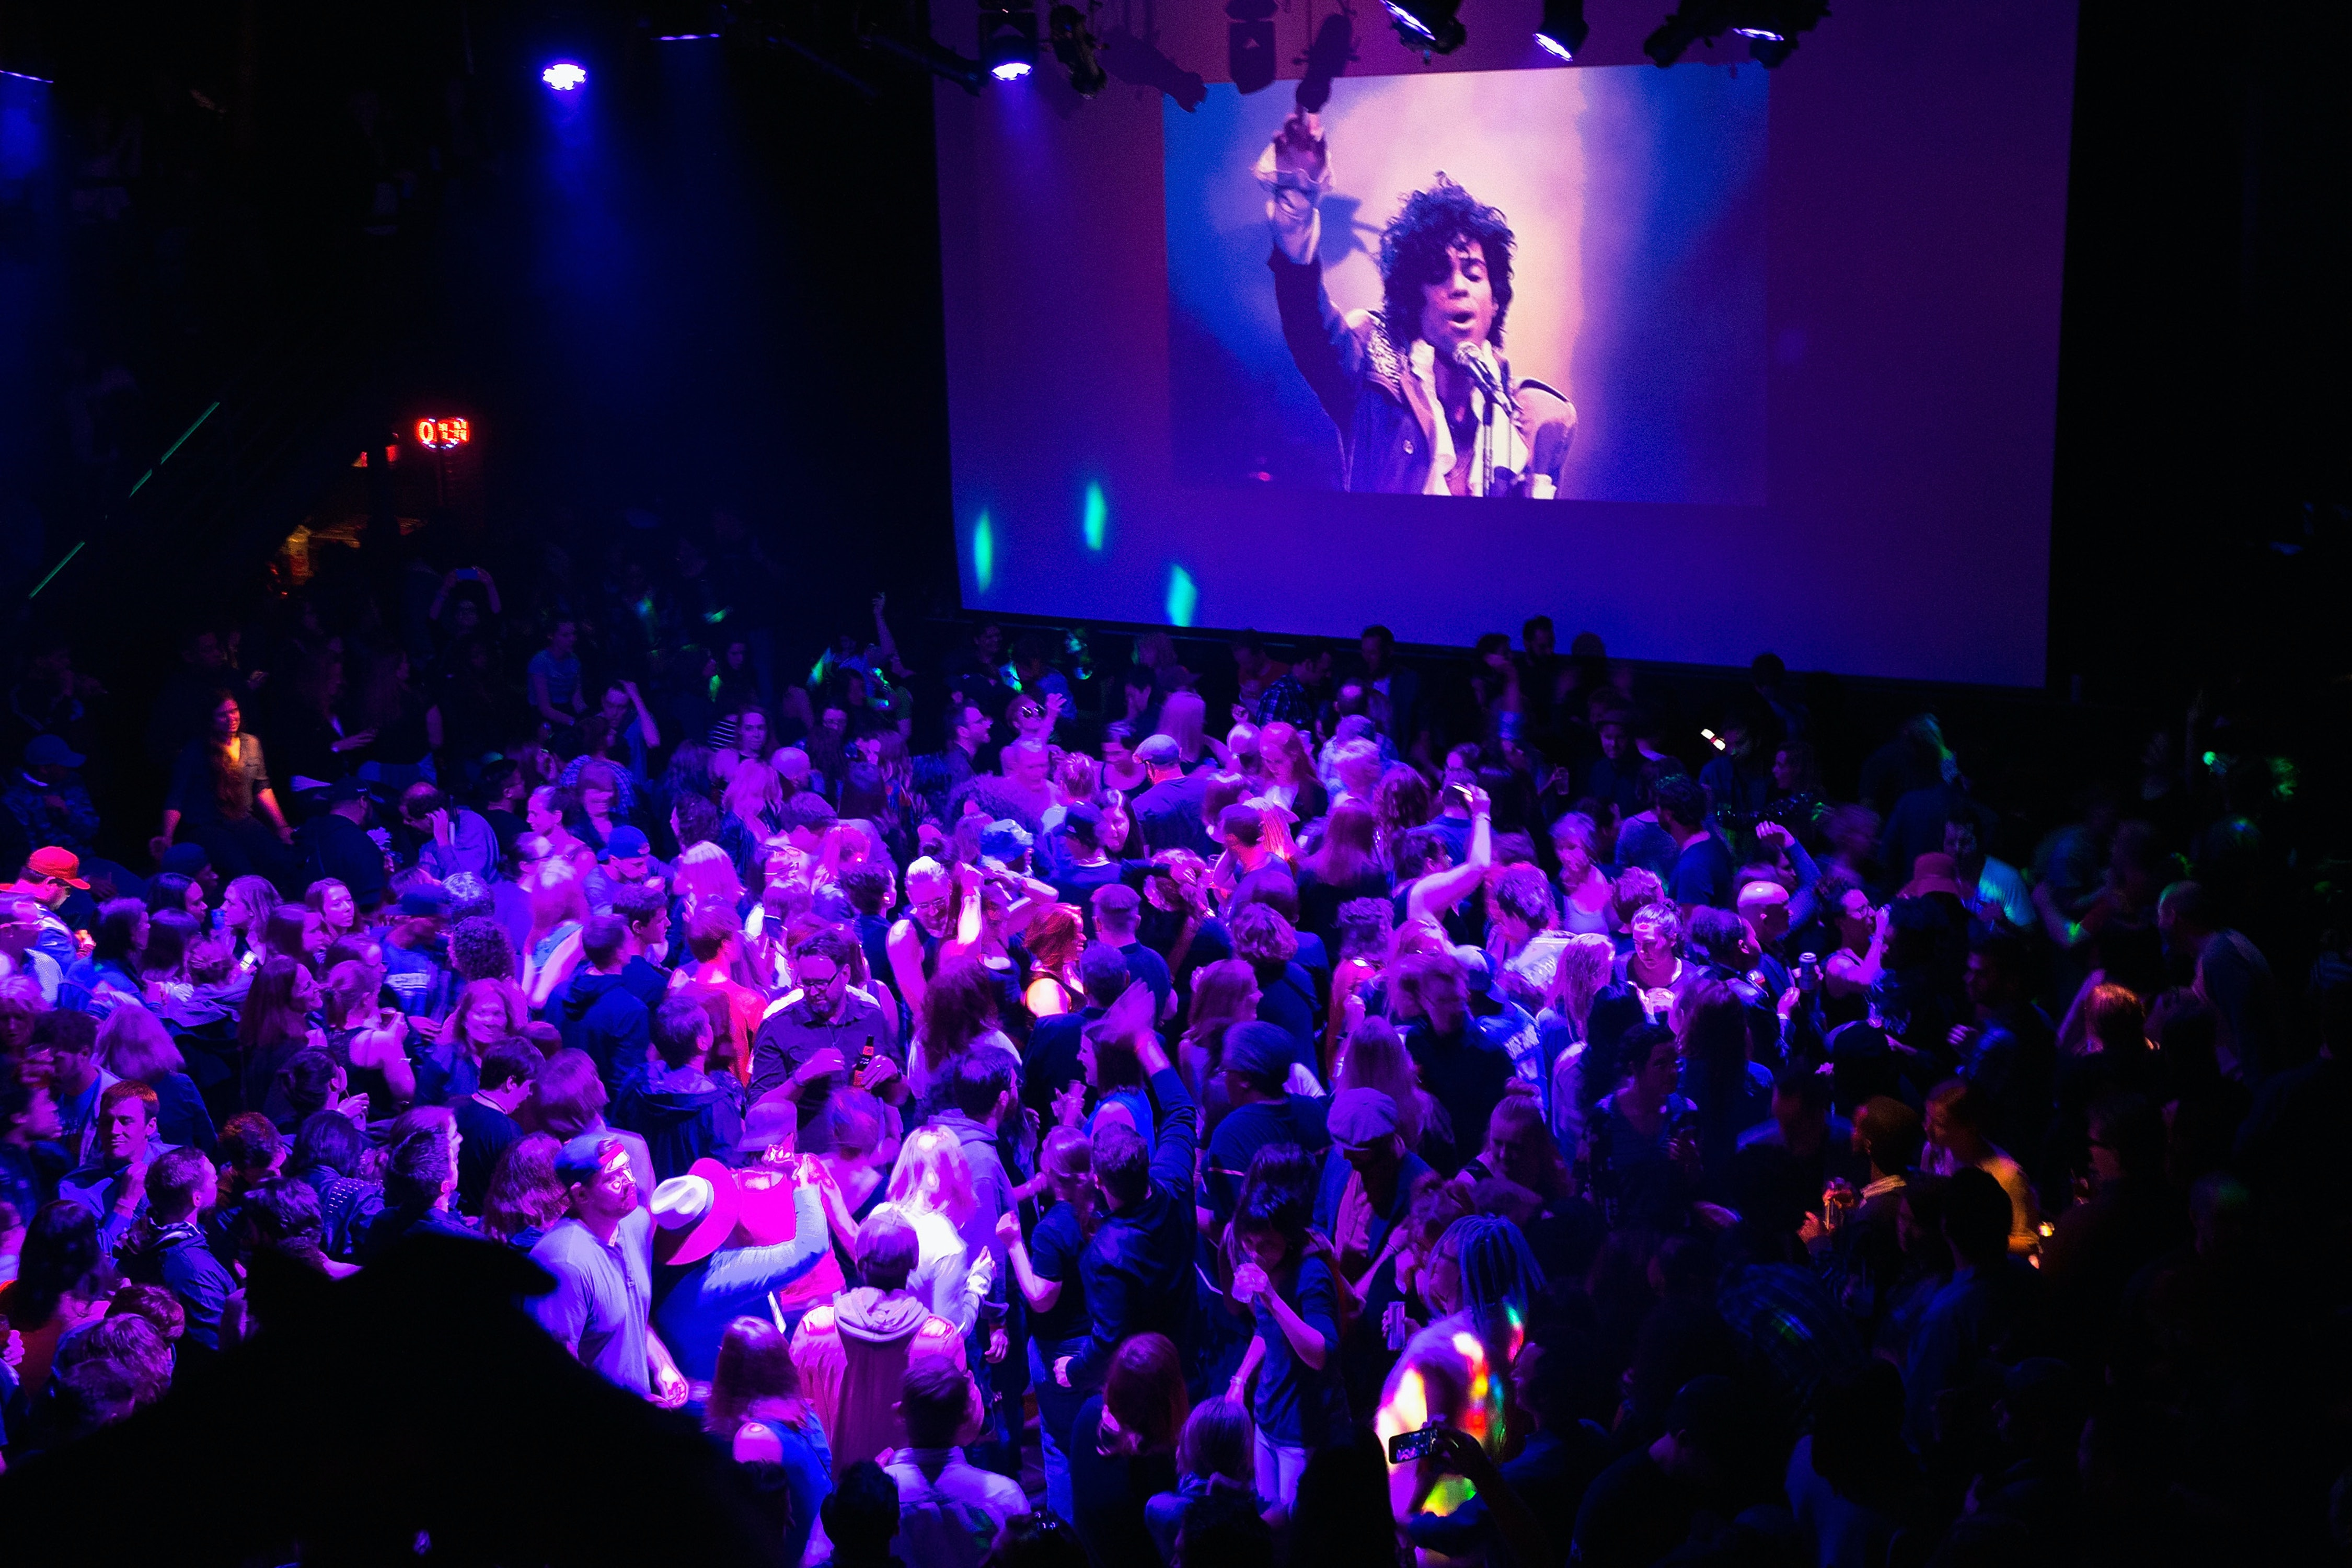 MINNEAPOLIS, MN - APRIL 21: Guests dance to Prince music as a slide show flashes images of the artist above the stage during a memorial dance party at the First Avenue nightclub on April 21, 2016 in Minneapolis, Minnesota. Prince, 57, was pronounced dead shortly after being found unresponsive at Paisley Park Studios in Chanhassen, Minnesota near Minneapolis. (Photo by Scott Olson/Getty Images)